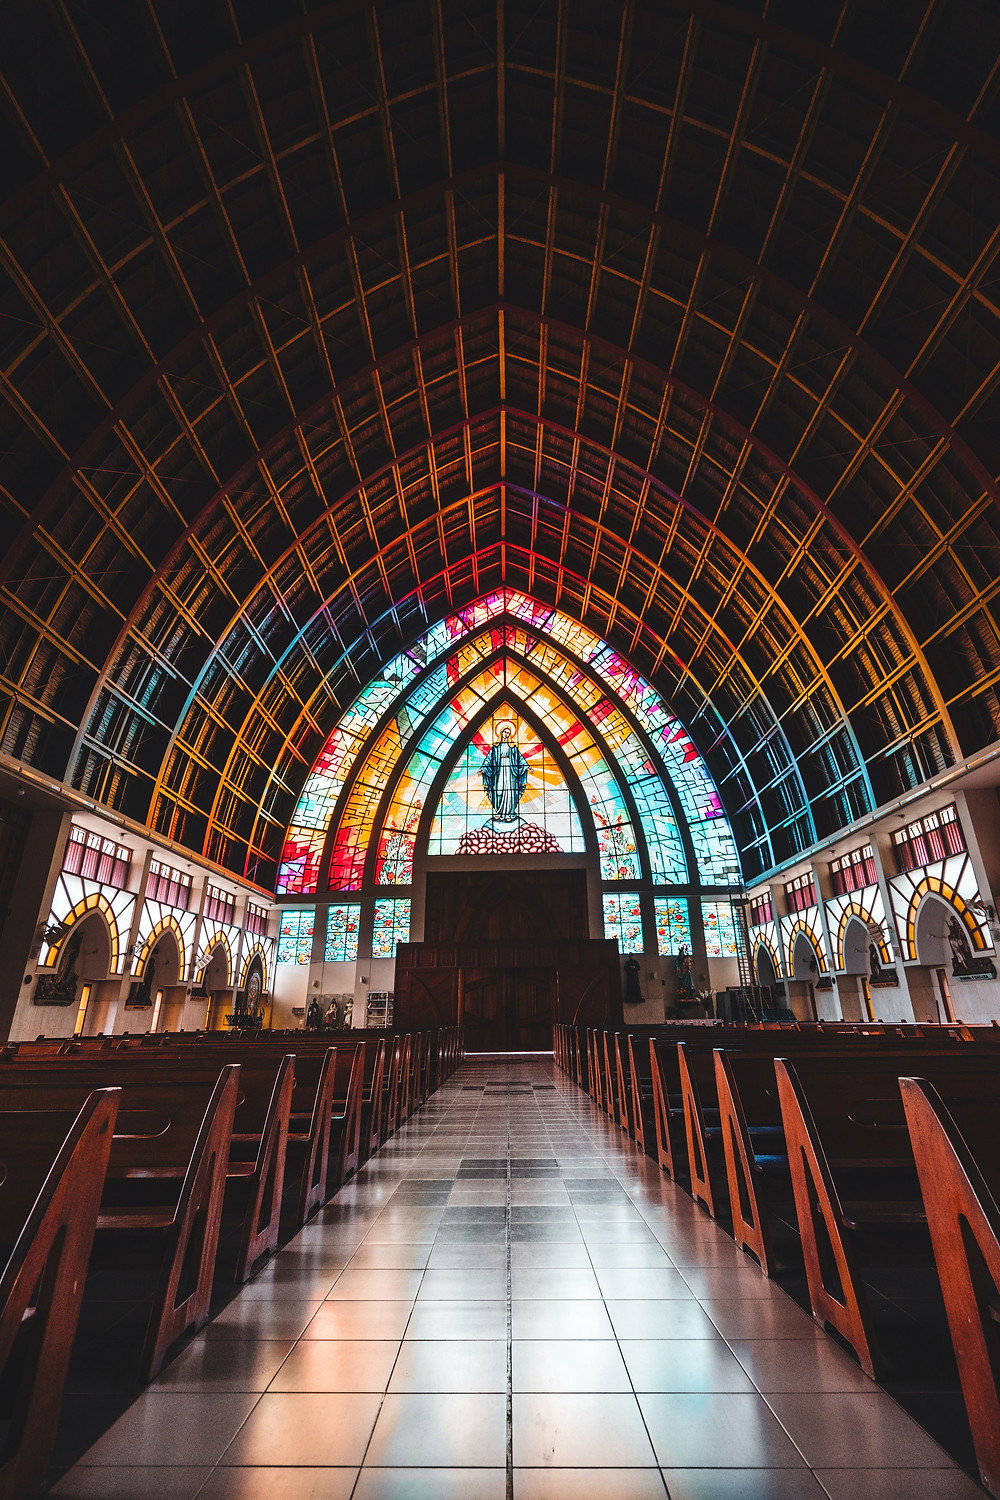 Shot of the inside of a church with wooden pews and a vaulted pyramid roof and a rainbow Christ stained glass window at the back